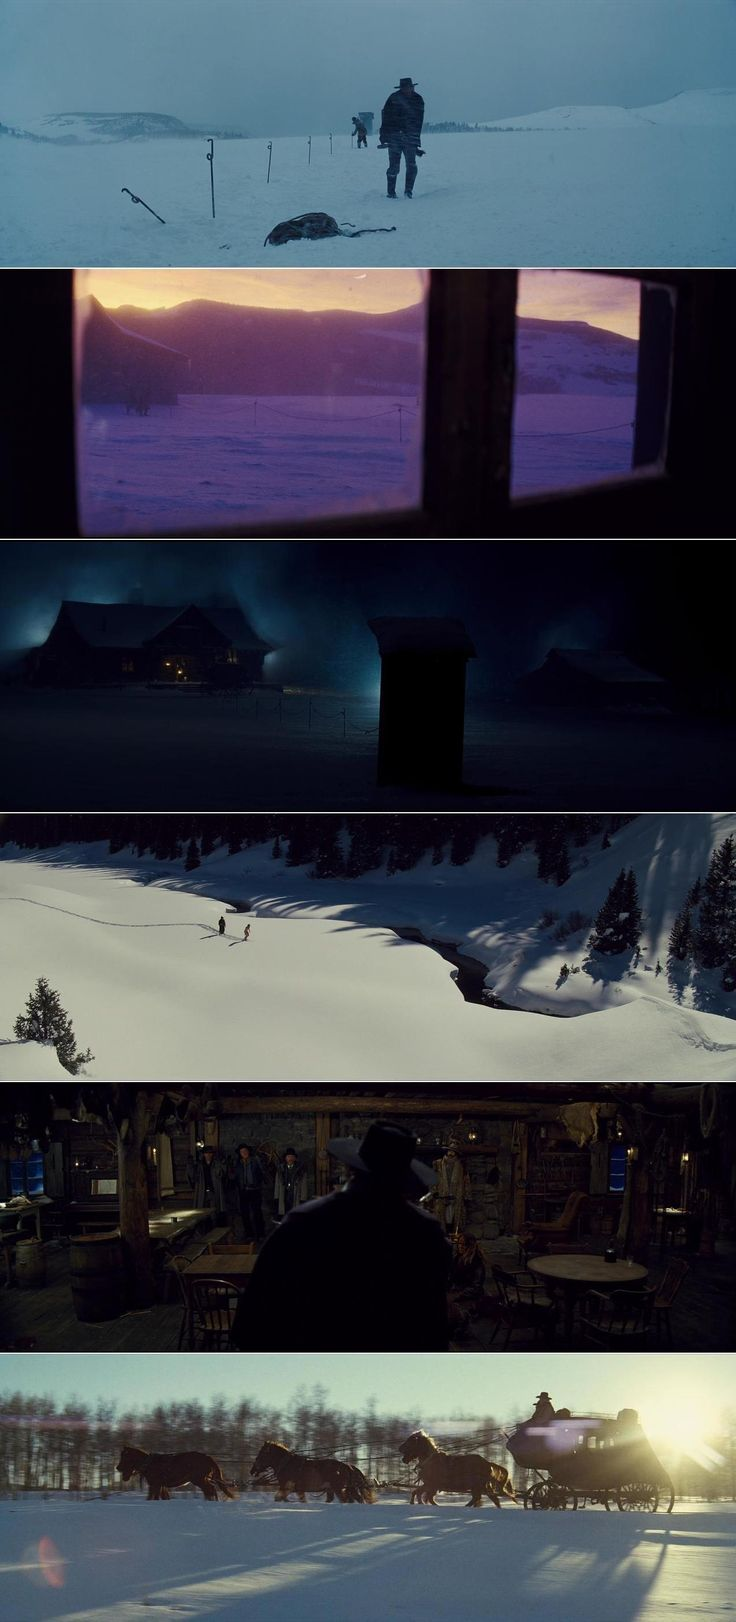 The Hateful Eight (2015) | Cinematography by Robert Richardson | Directed by Quentin Tarantino